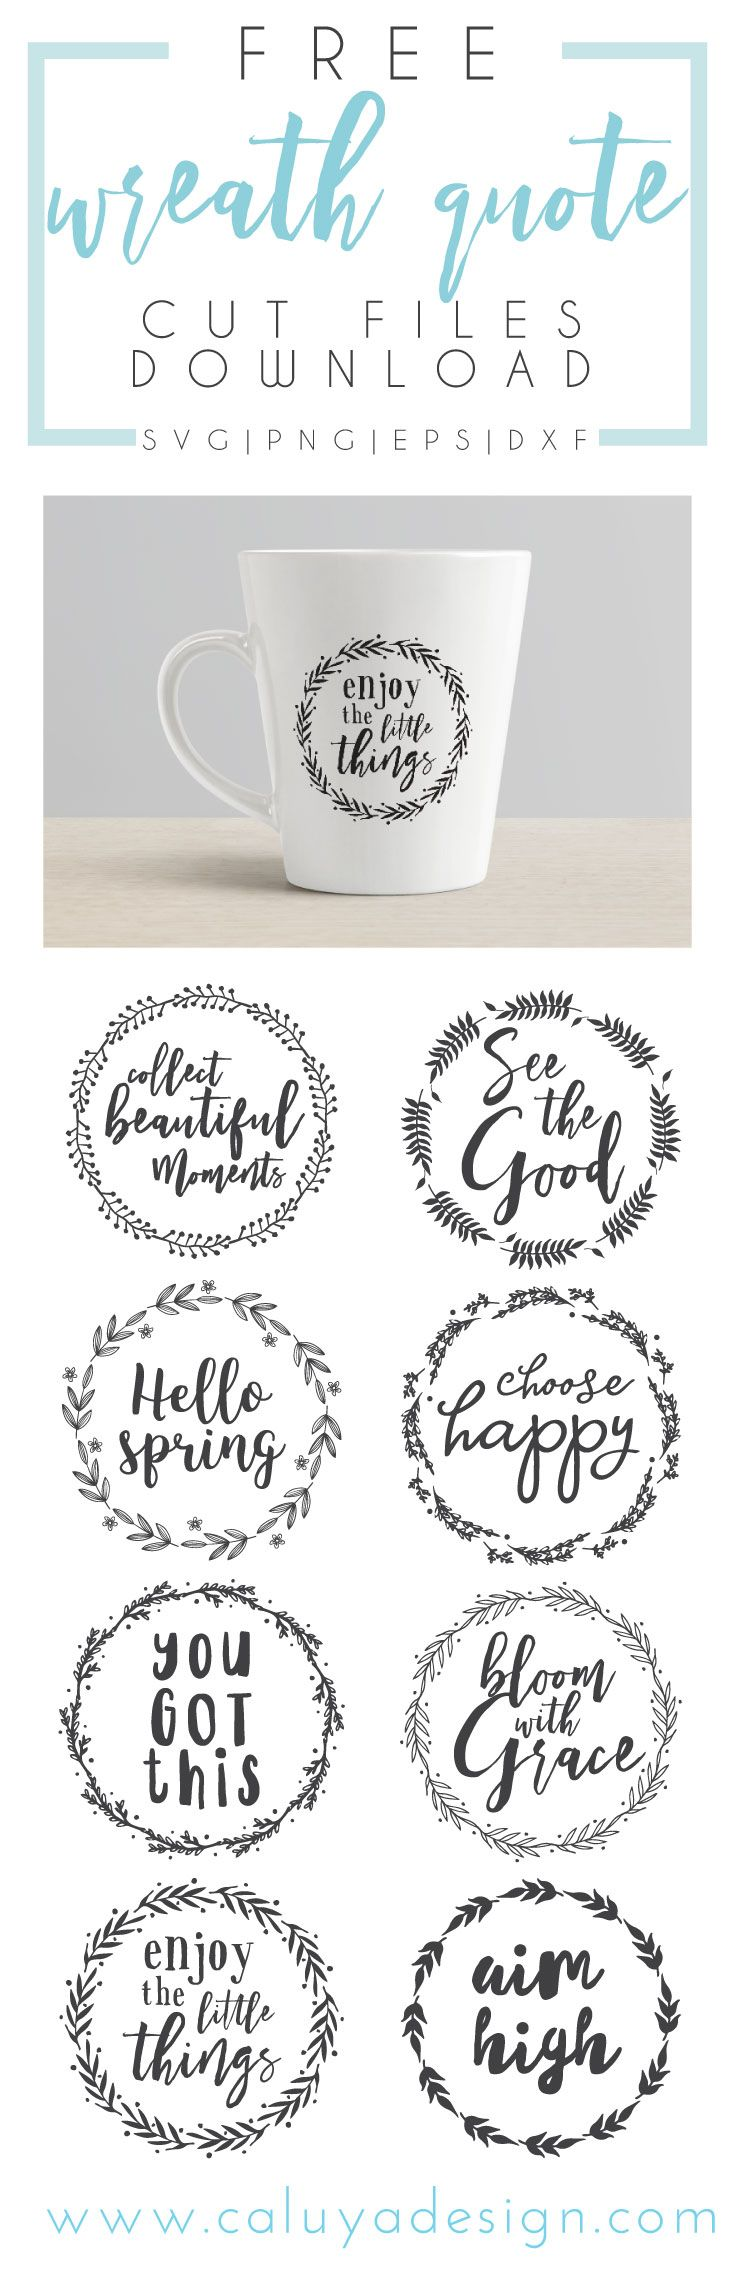 Free wreath quote SVG cut file download, compatible with Cricut and Cameo Silhouette, and other major cutting machines. Enjoy this beautiful wreath inspirational and happy quotes SVG cut files for free! 100% free for personal use, and only $3 for commercial use. motivational cute SVG cut file, wreath SVG cut file, quote SVG cut file, Quote SVG cut file bundle